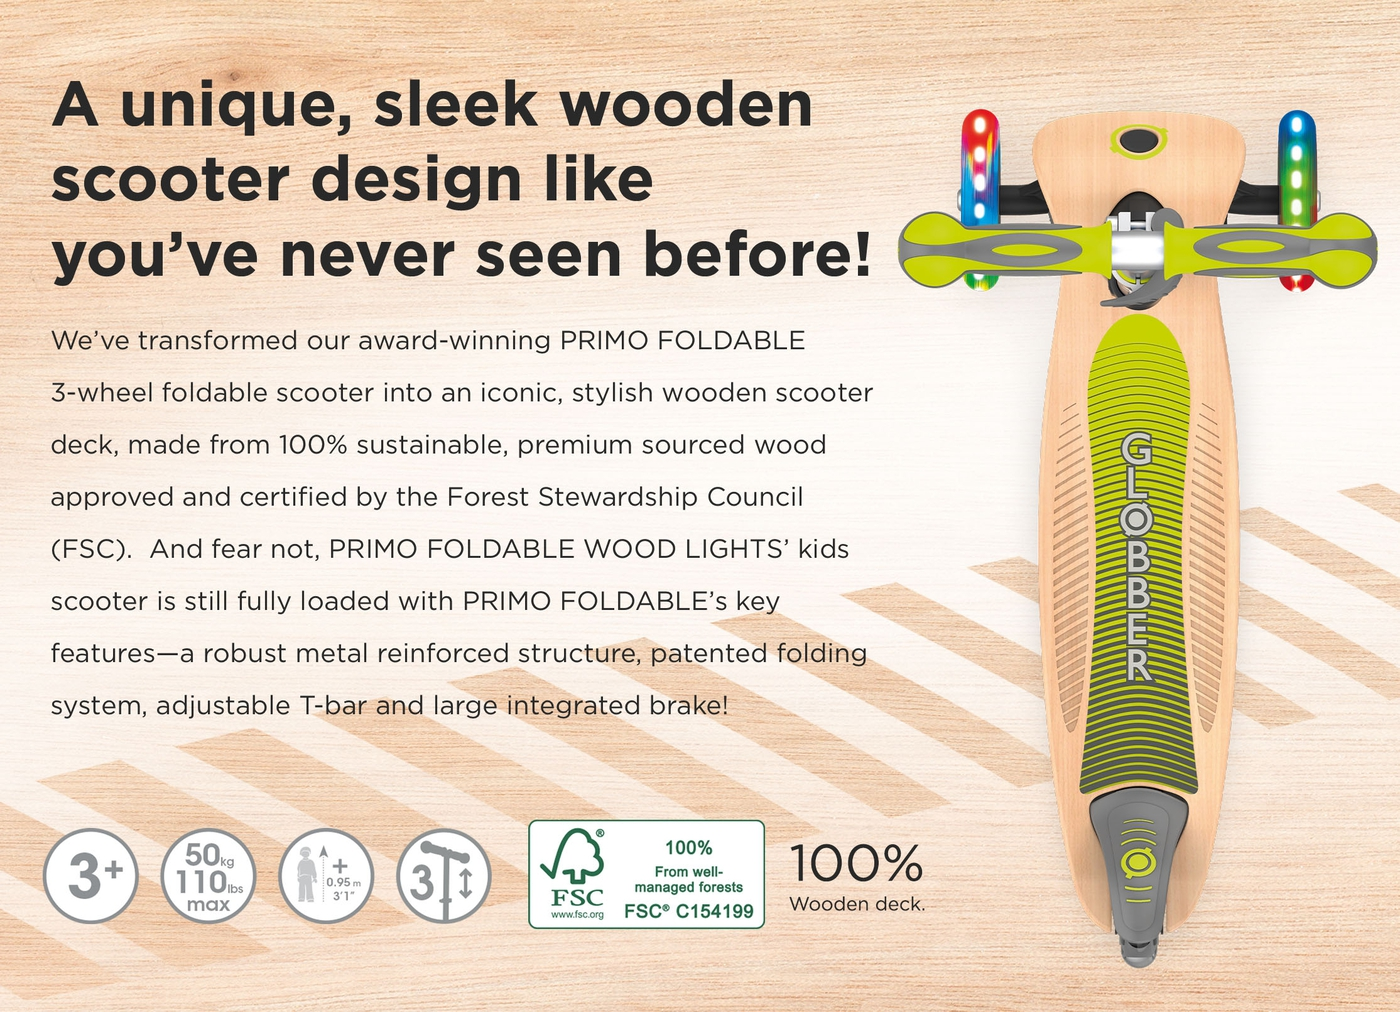 A unique, sleek wooden scooter design like you've never seen before!